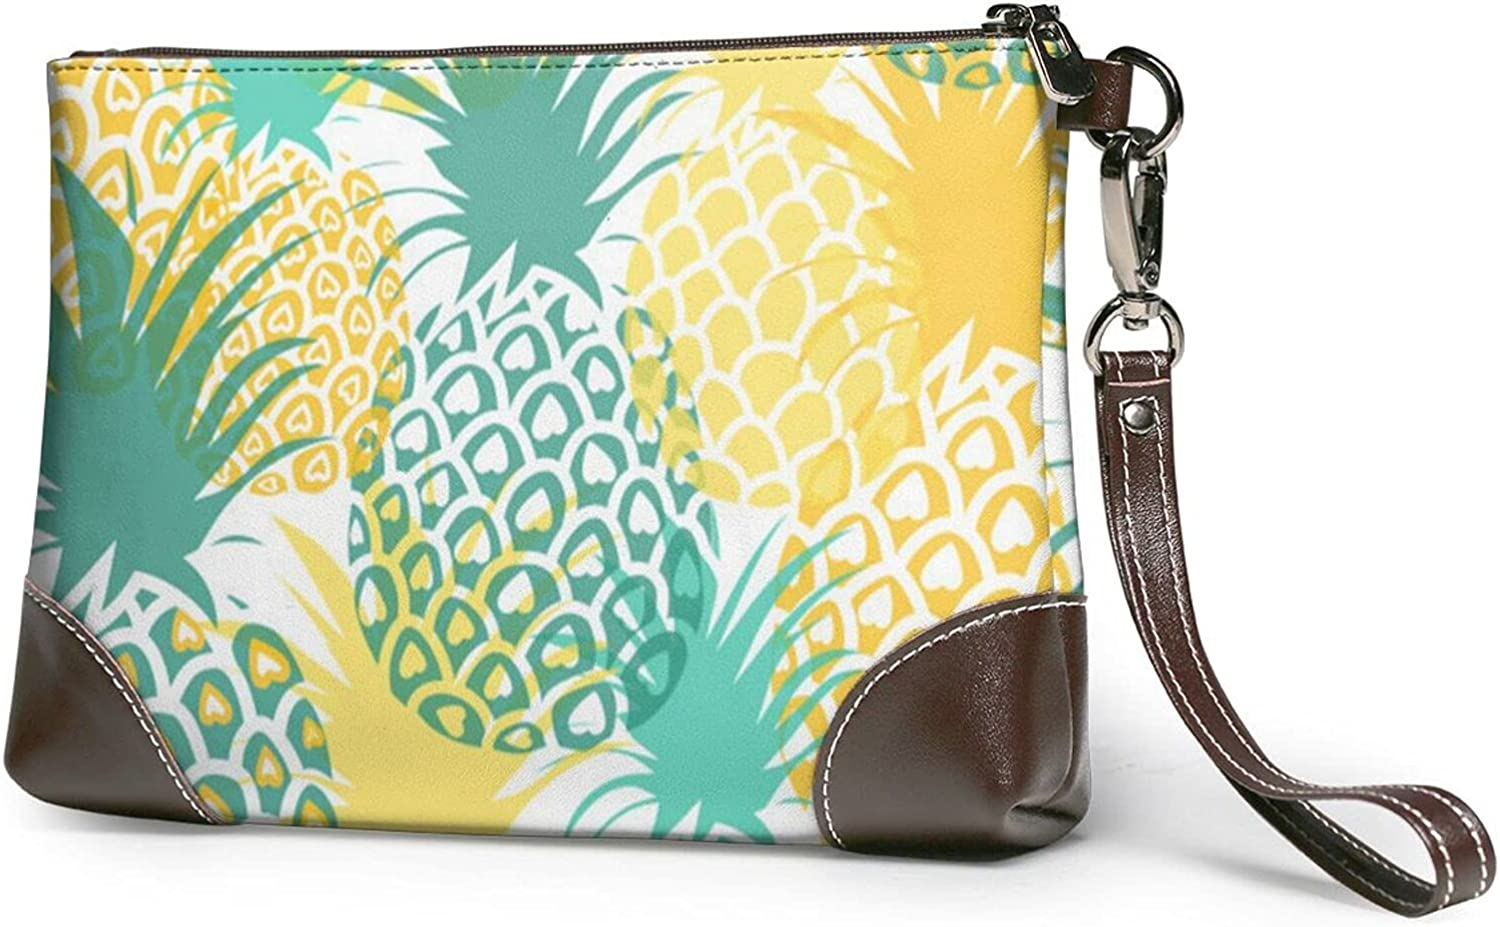 Wallet Yellow And Dark Green Stick Figure Pineapple Printed Ladies Wristband Handbag Leather Clutch 8 X 5.5 X 1.5 Inches